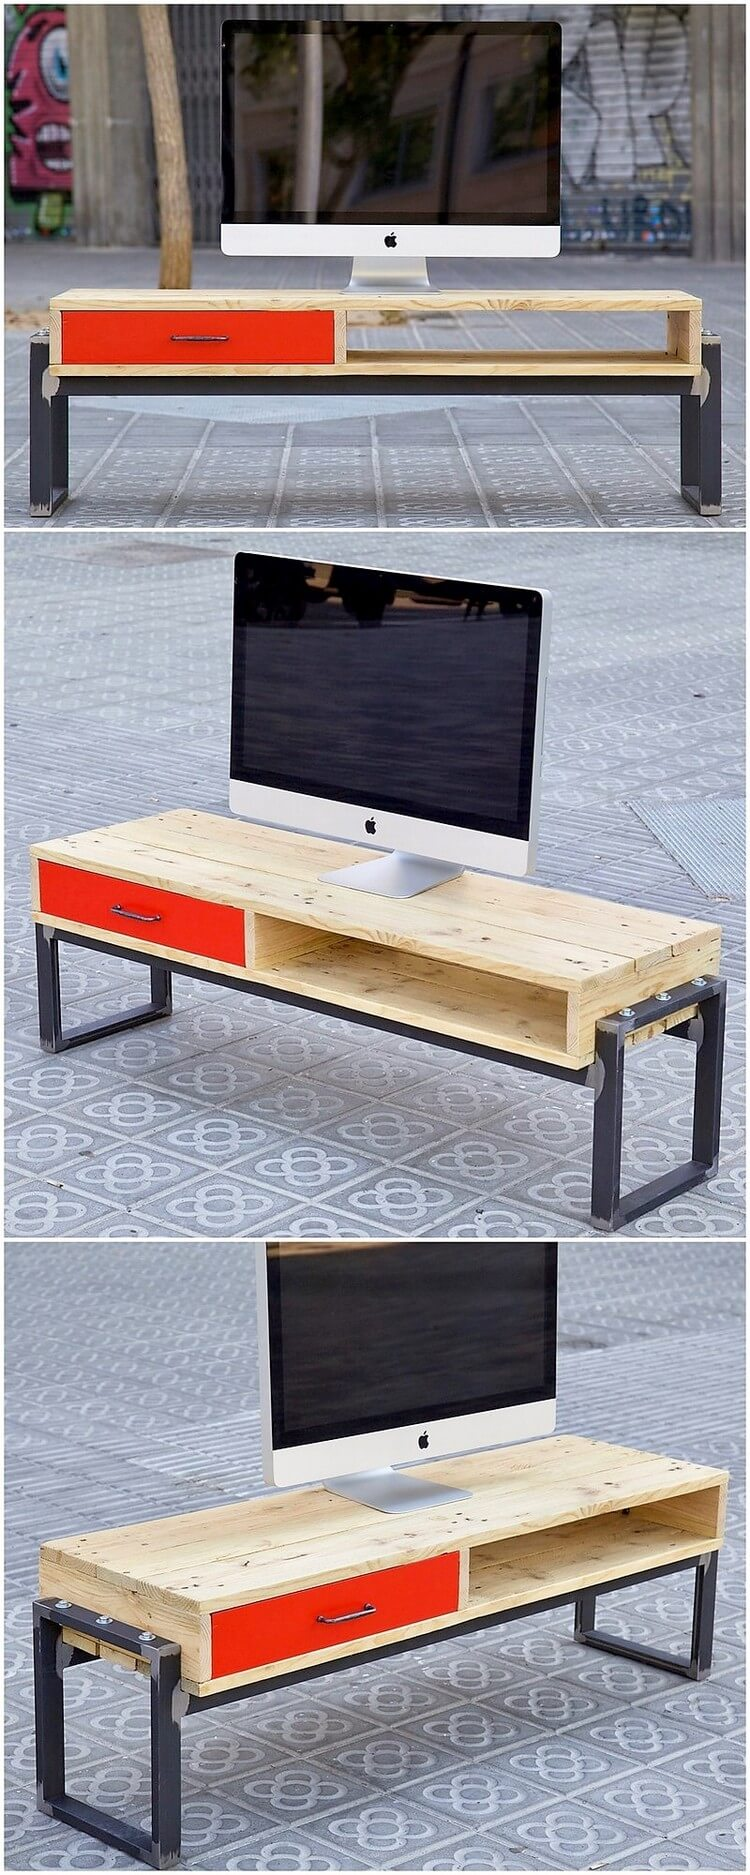 Pallet TV Stand with Drawers